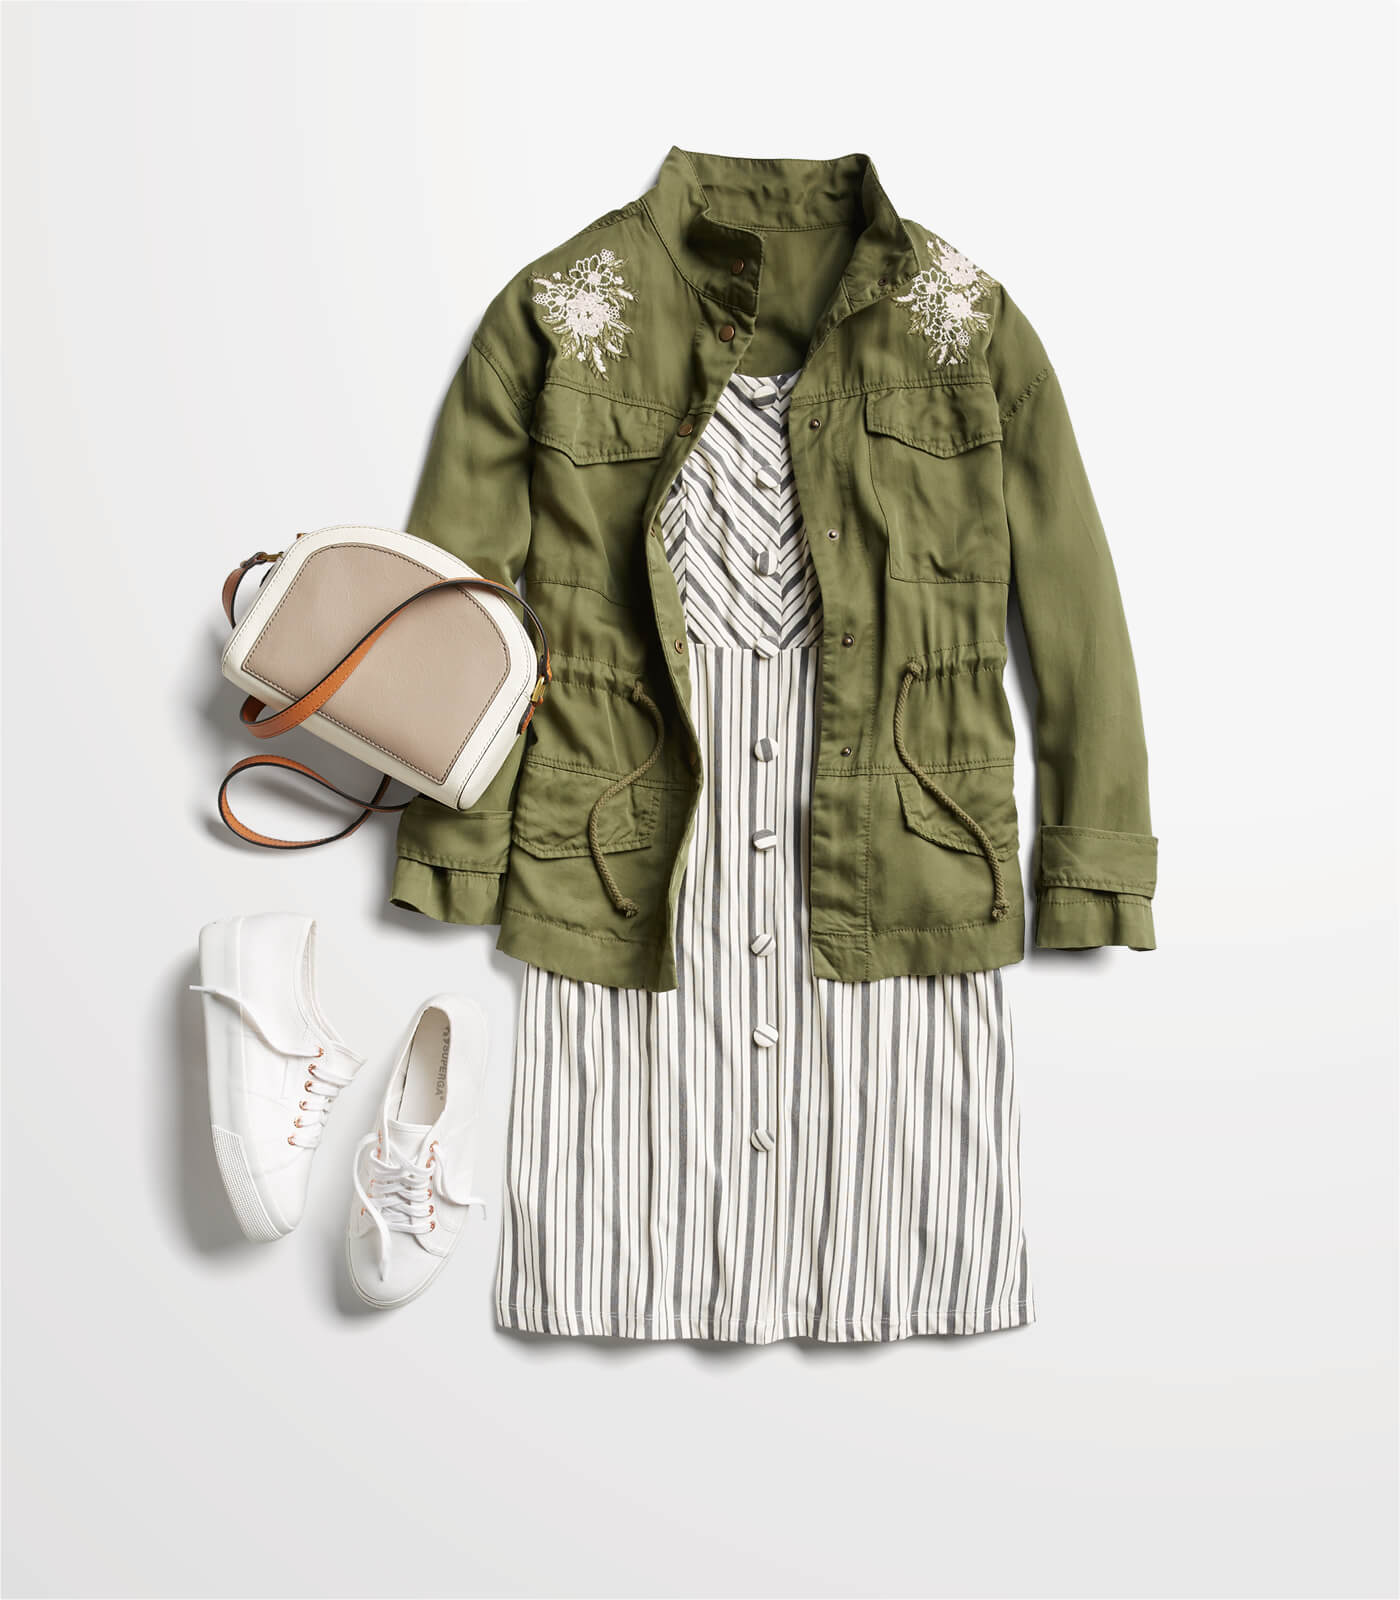 striped dress with cargo jacket and sneakers